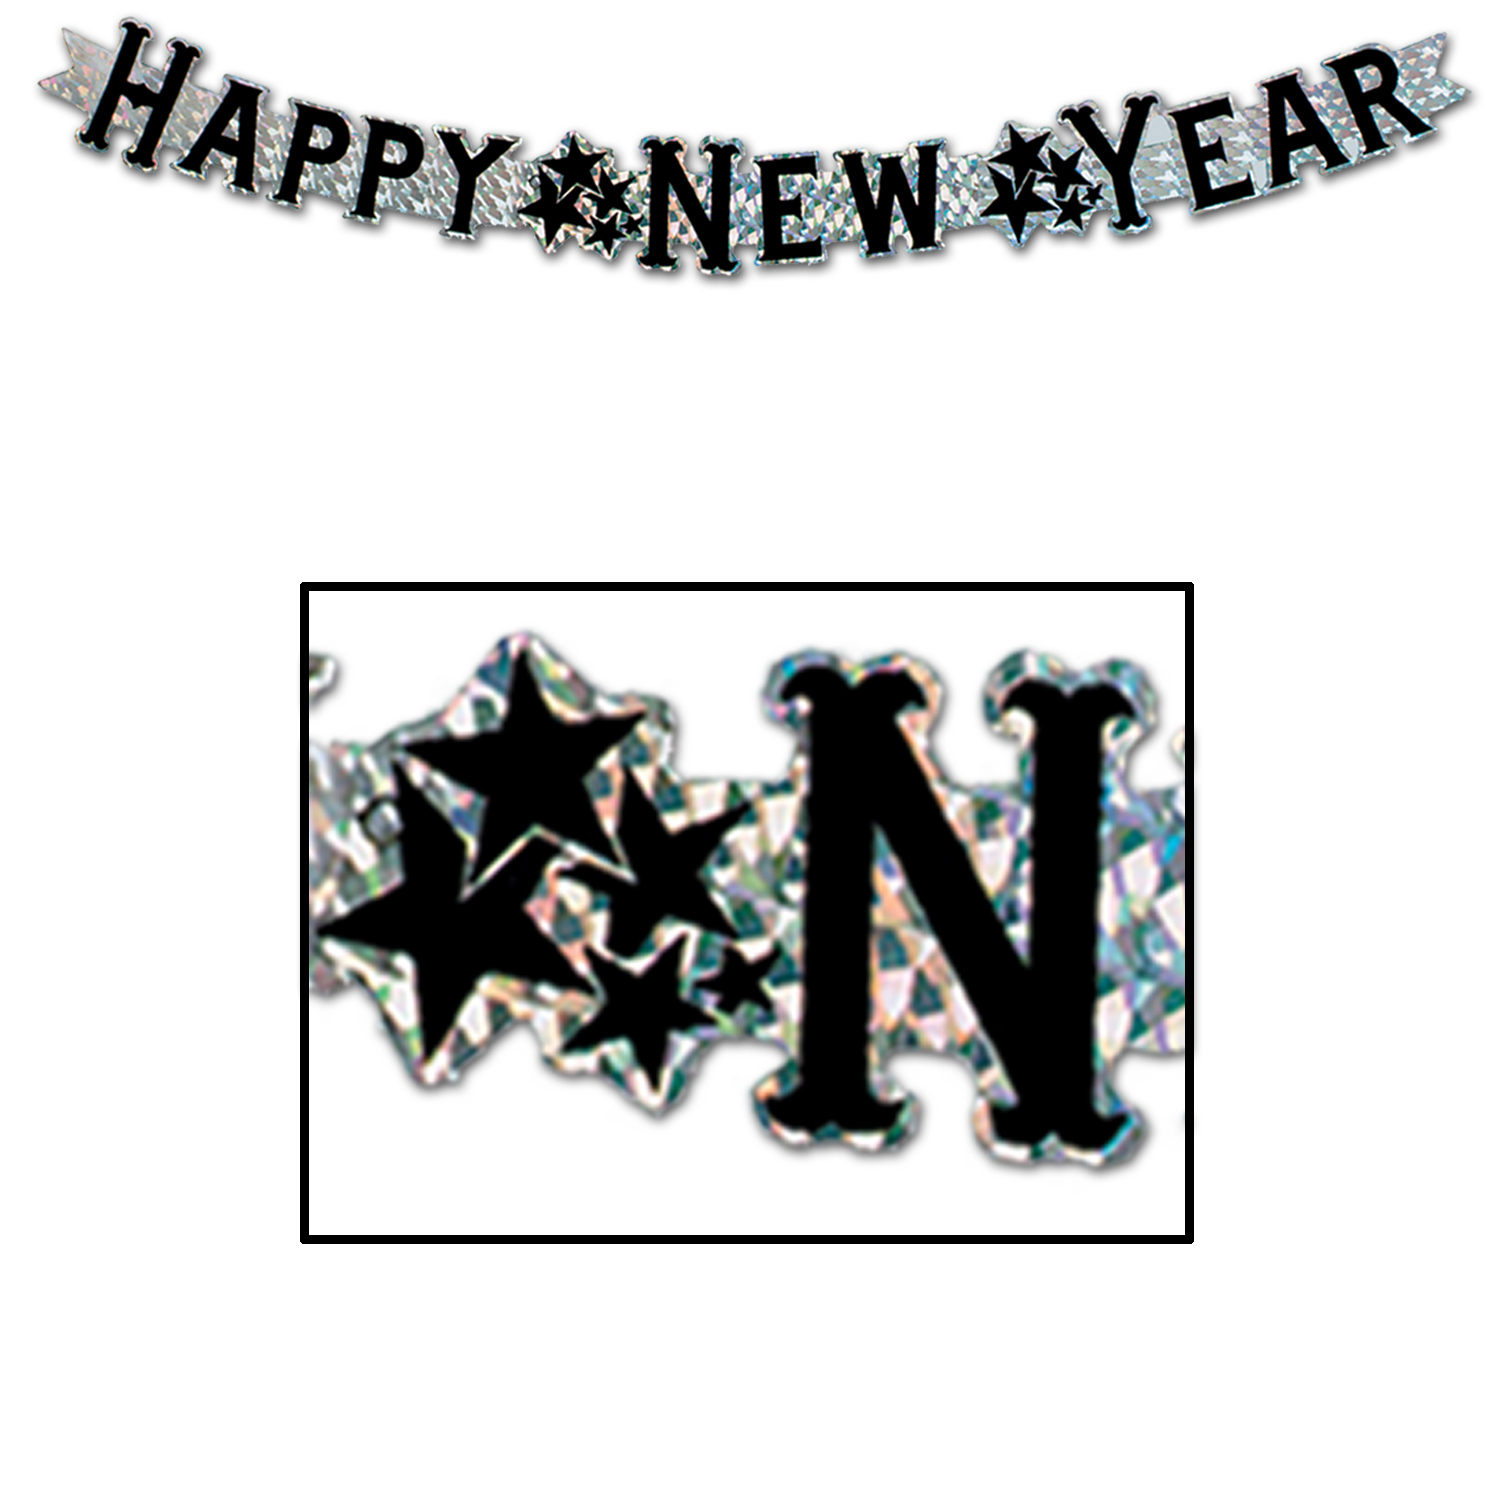 Silver prismatic streamer with black happy new year lettering and star clumps separating wording.